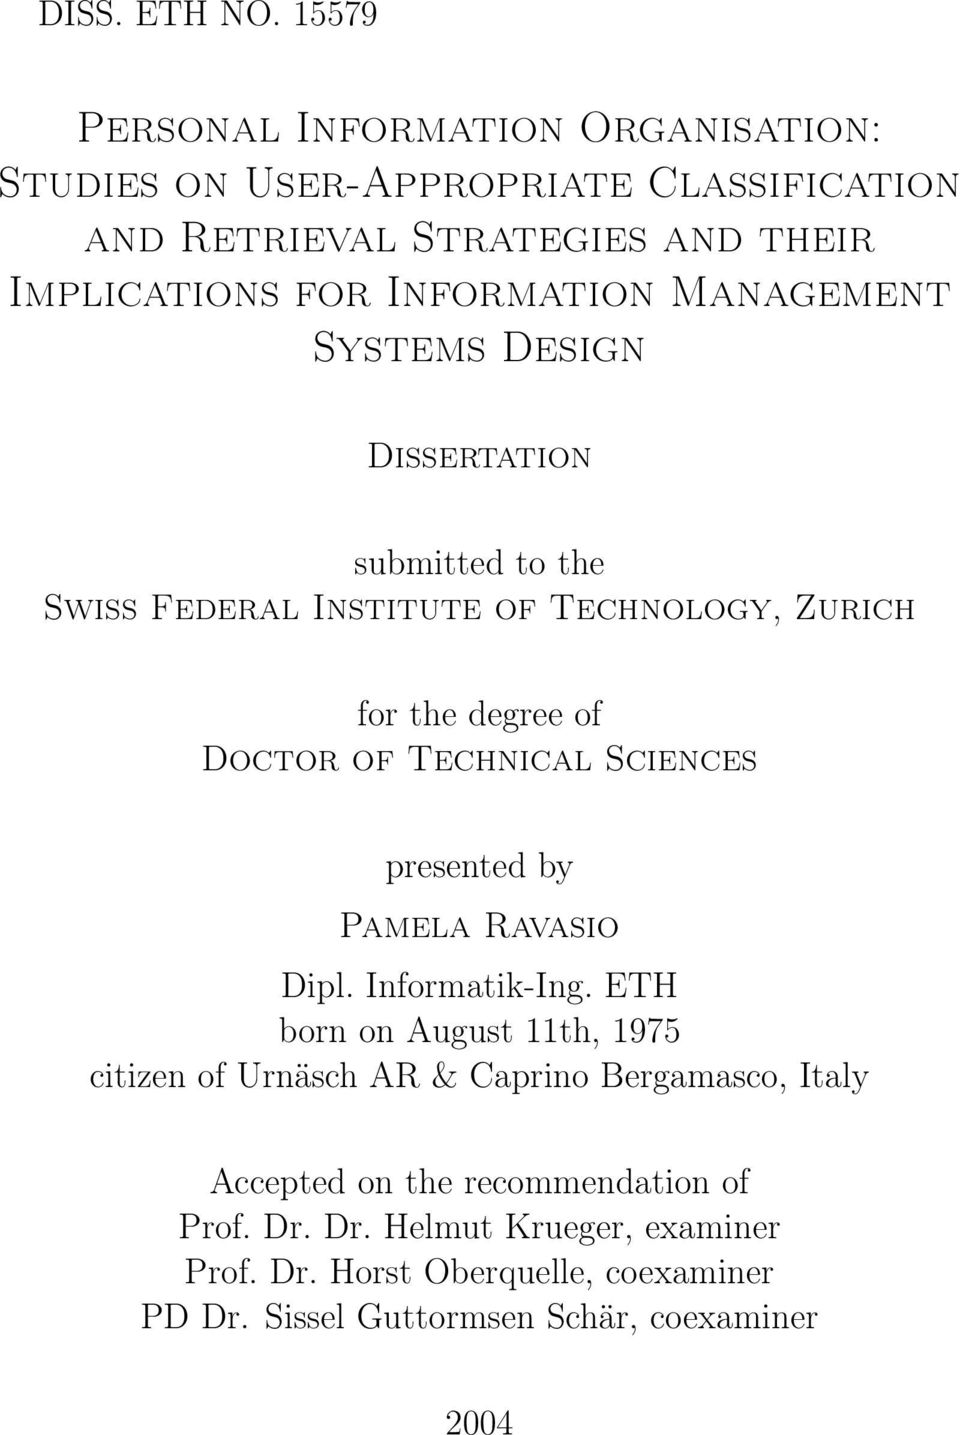 Management Systems Design Dissertation submitted to the Swiss Federal Institute of Technology, Zurich for the degree of Doctor of Technical Sciences